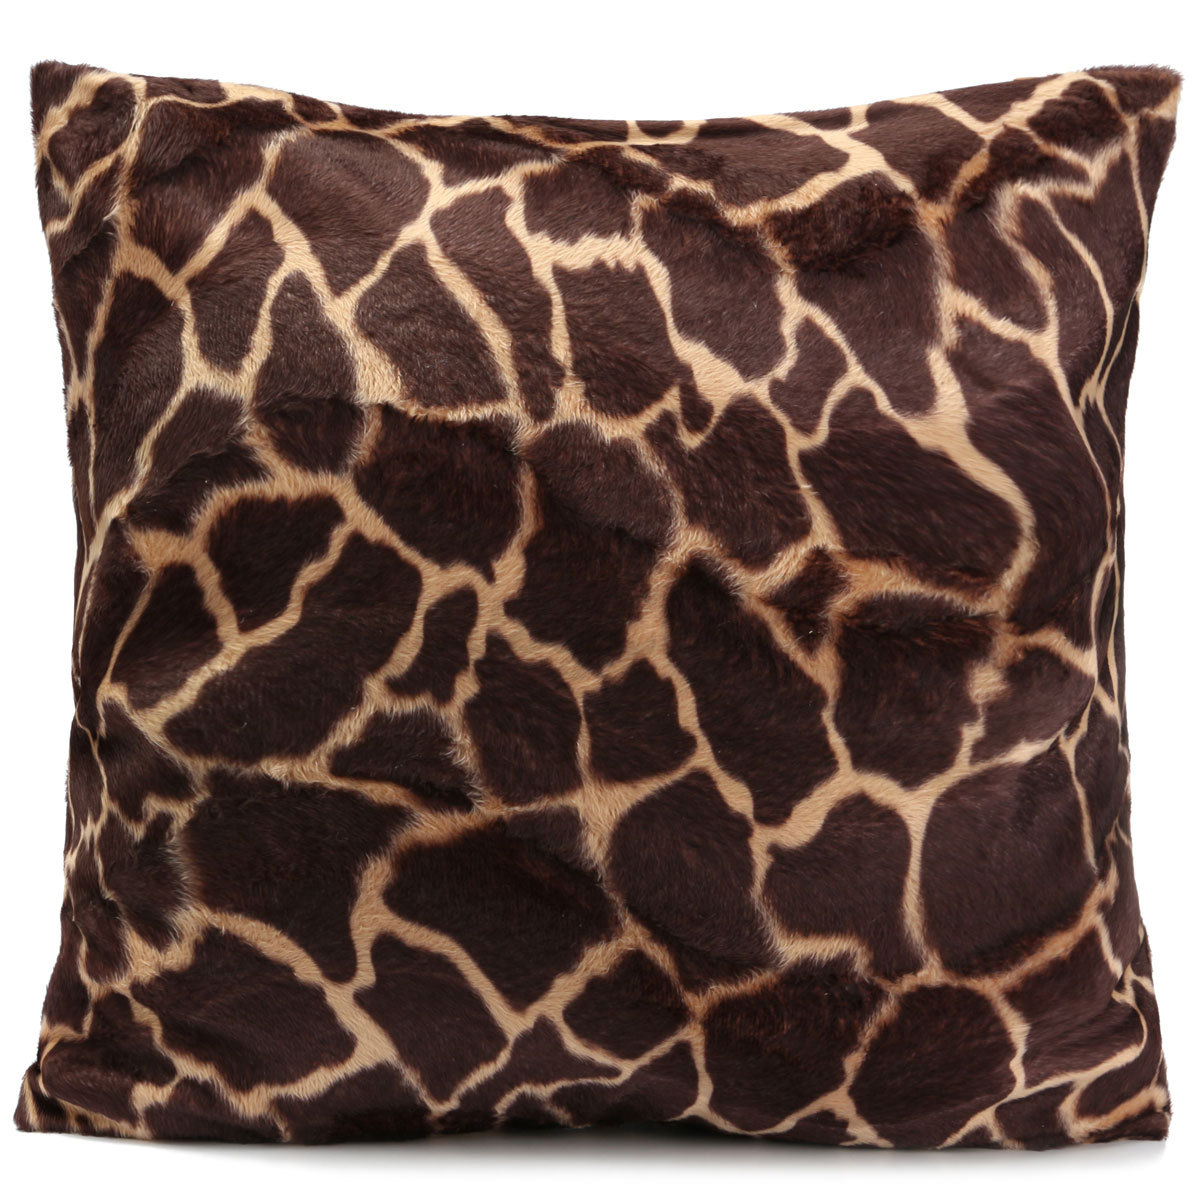 Animal Print Sofa Pillows : Animal Zebra Leopard Print Pillow Case Sofa Waist Throw Cushion Cover Home Decor